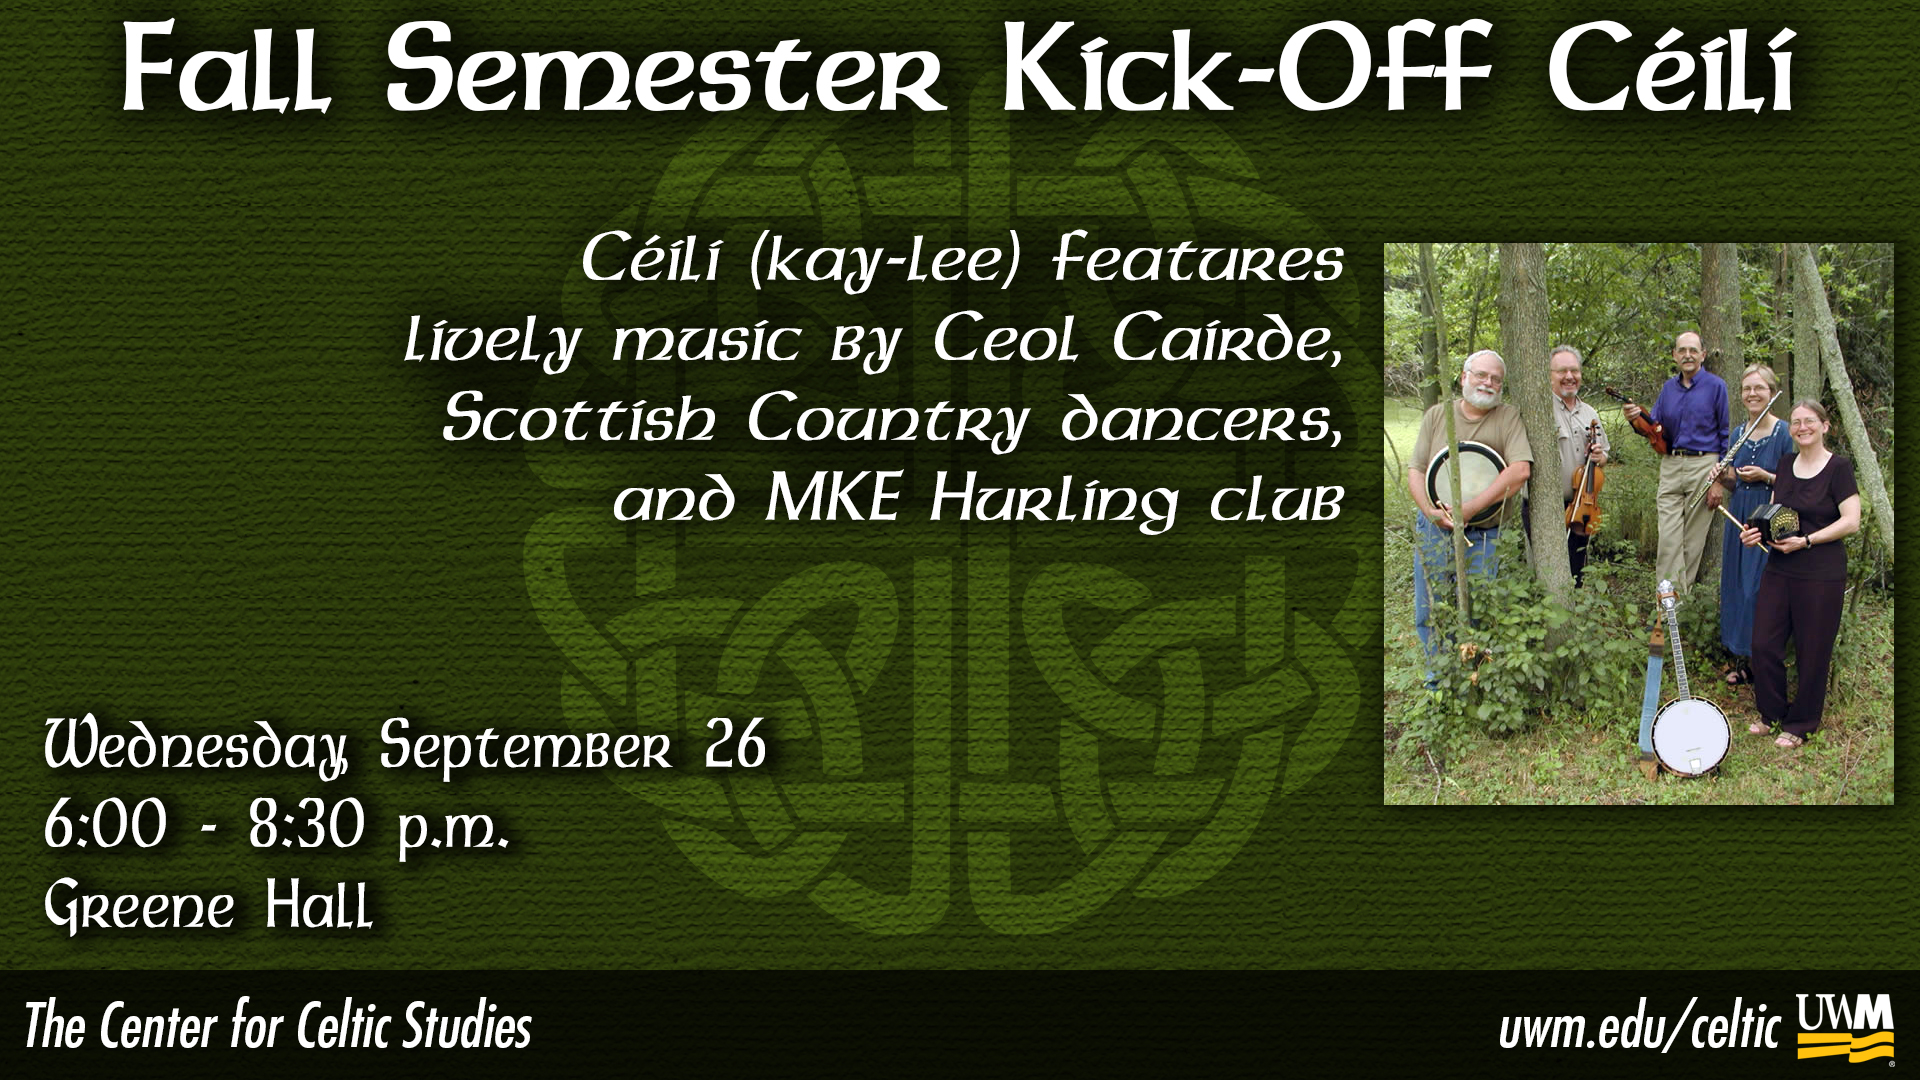 Center for Celtic Studies Fall Semester Kick-Off image